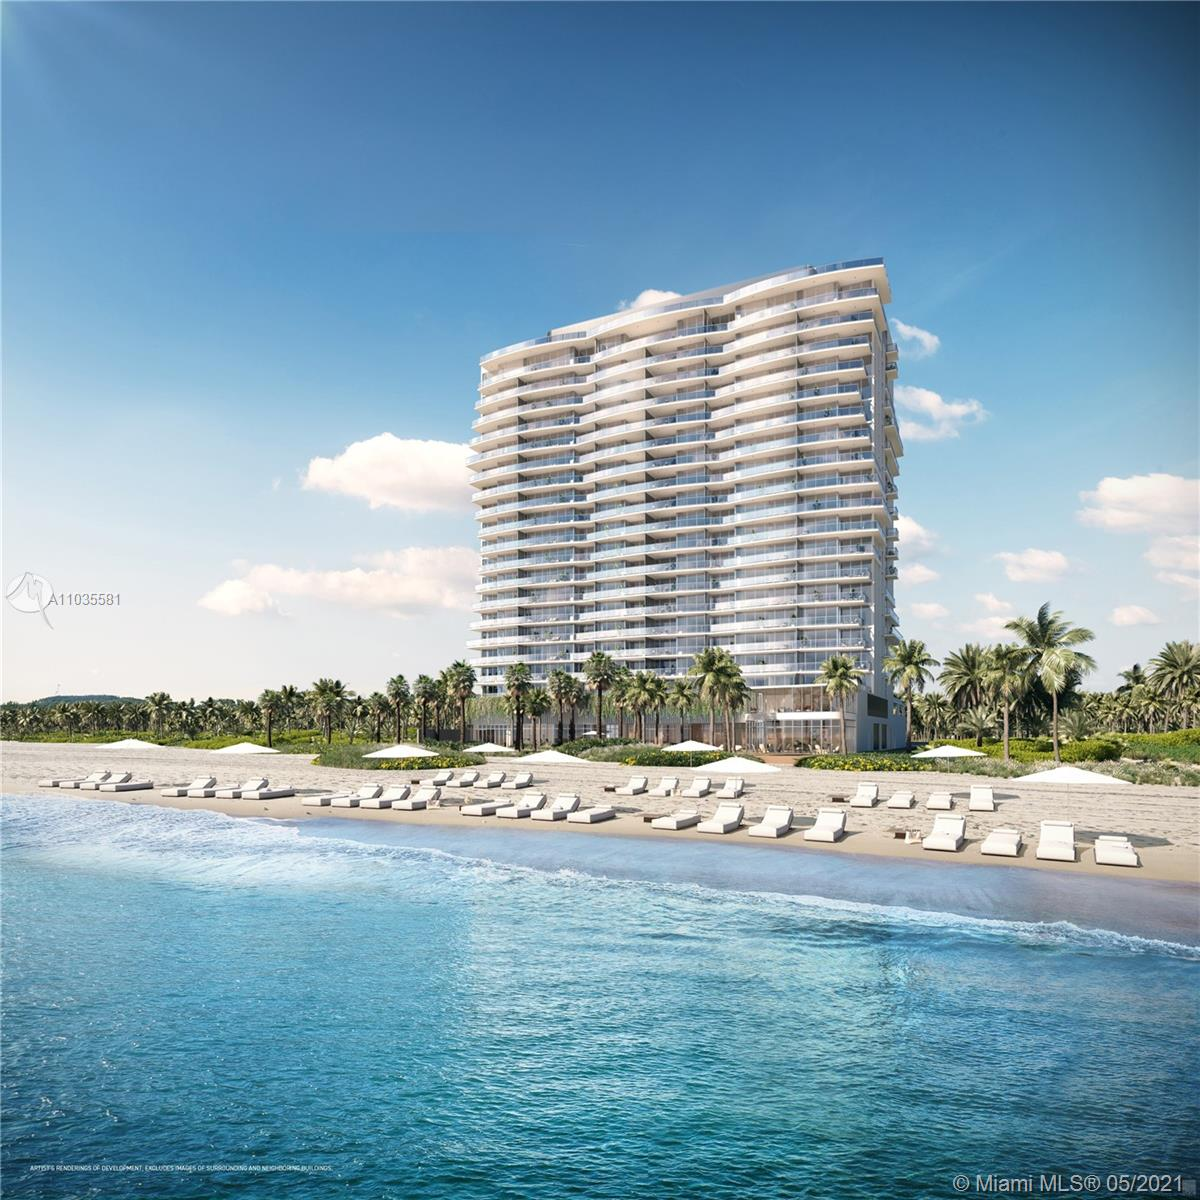 Spectacular 2 Bedroom 2.5 Bath + Den at Pompano's HOTTEST new pre-construction property, SOLEMAR! This residence has a contemporary floor plan featuring floor-to-ceiling windows with breathtaking views of the city, the Atlantic Ocean and the Intracoastal Waterway. Private elevator access and entry foyers in all units. From unforgettable beach views to a stunning pool deck to an enormous 13,000 square-foot terraced green space, SOLEMAR exceeds all of your expectations.